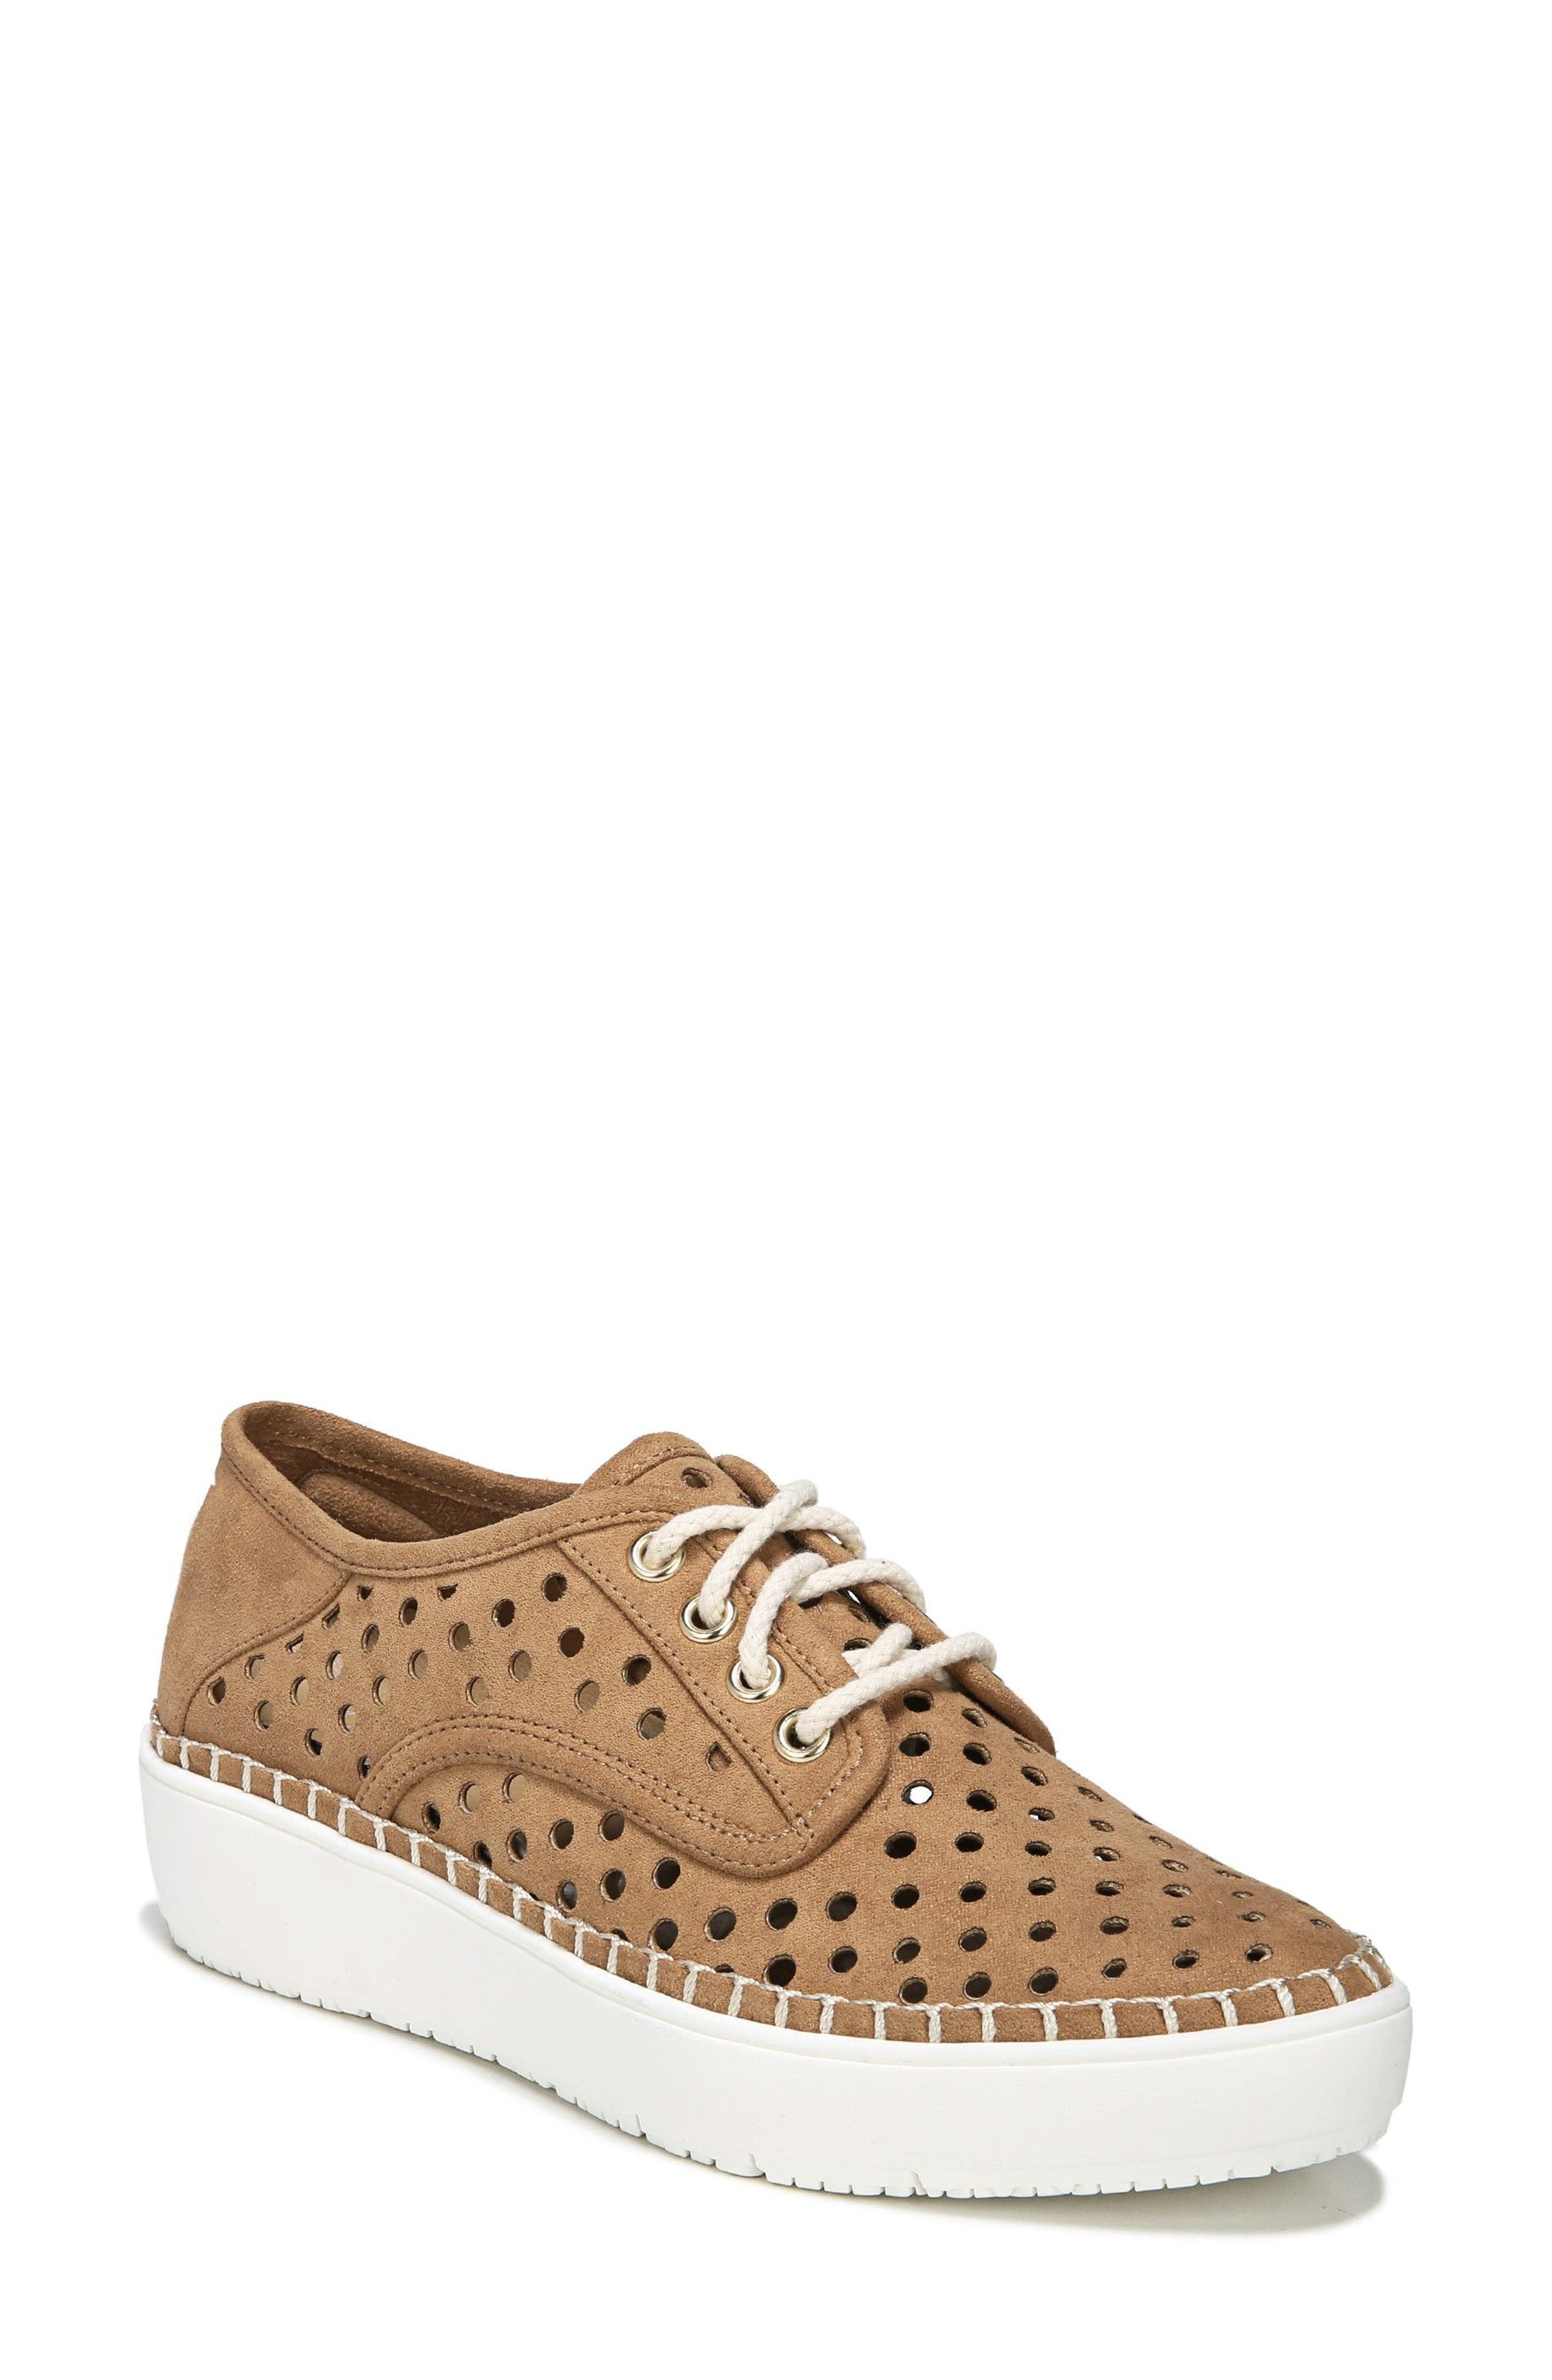 Global Sneaker,                             Main thumbnail 1, color,                             Saddle Faux Leather